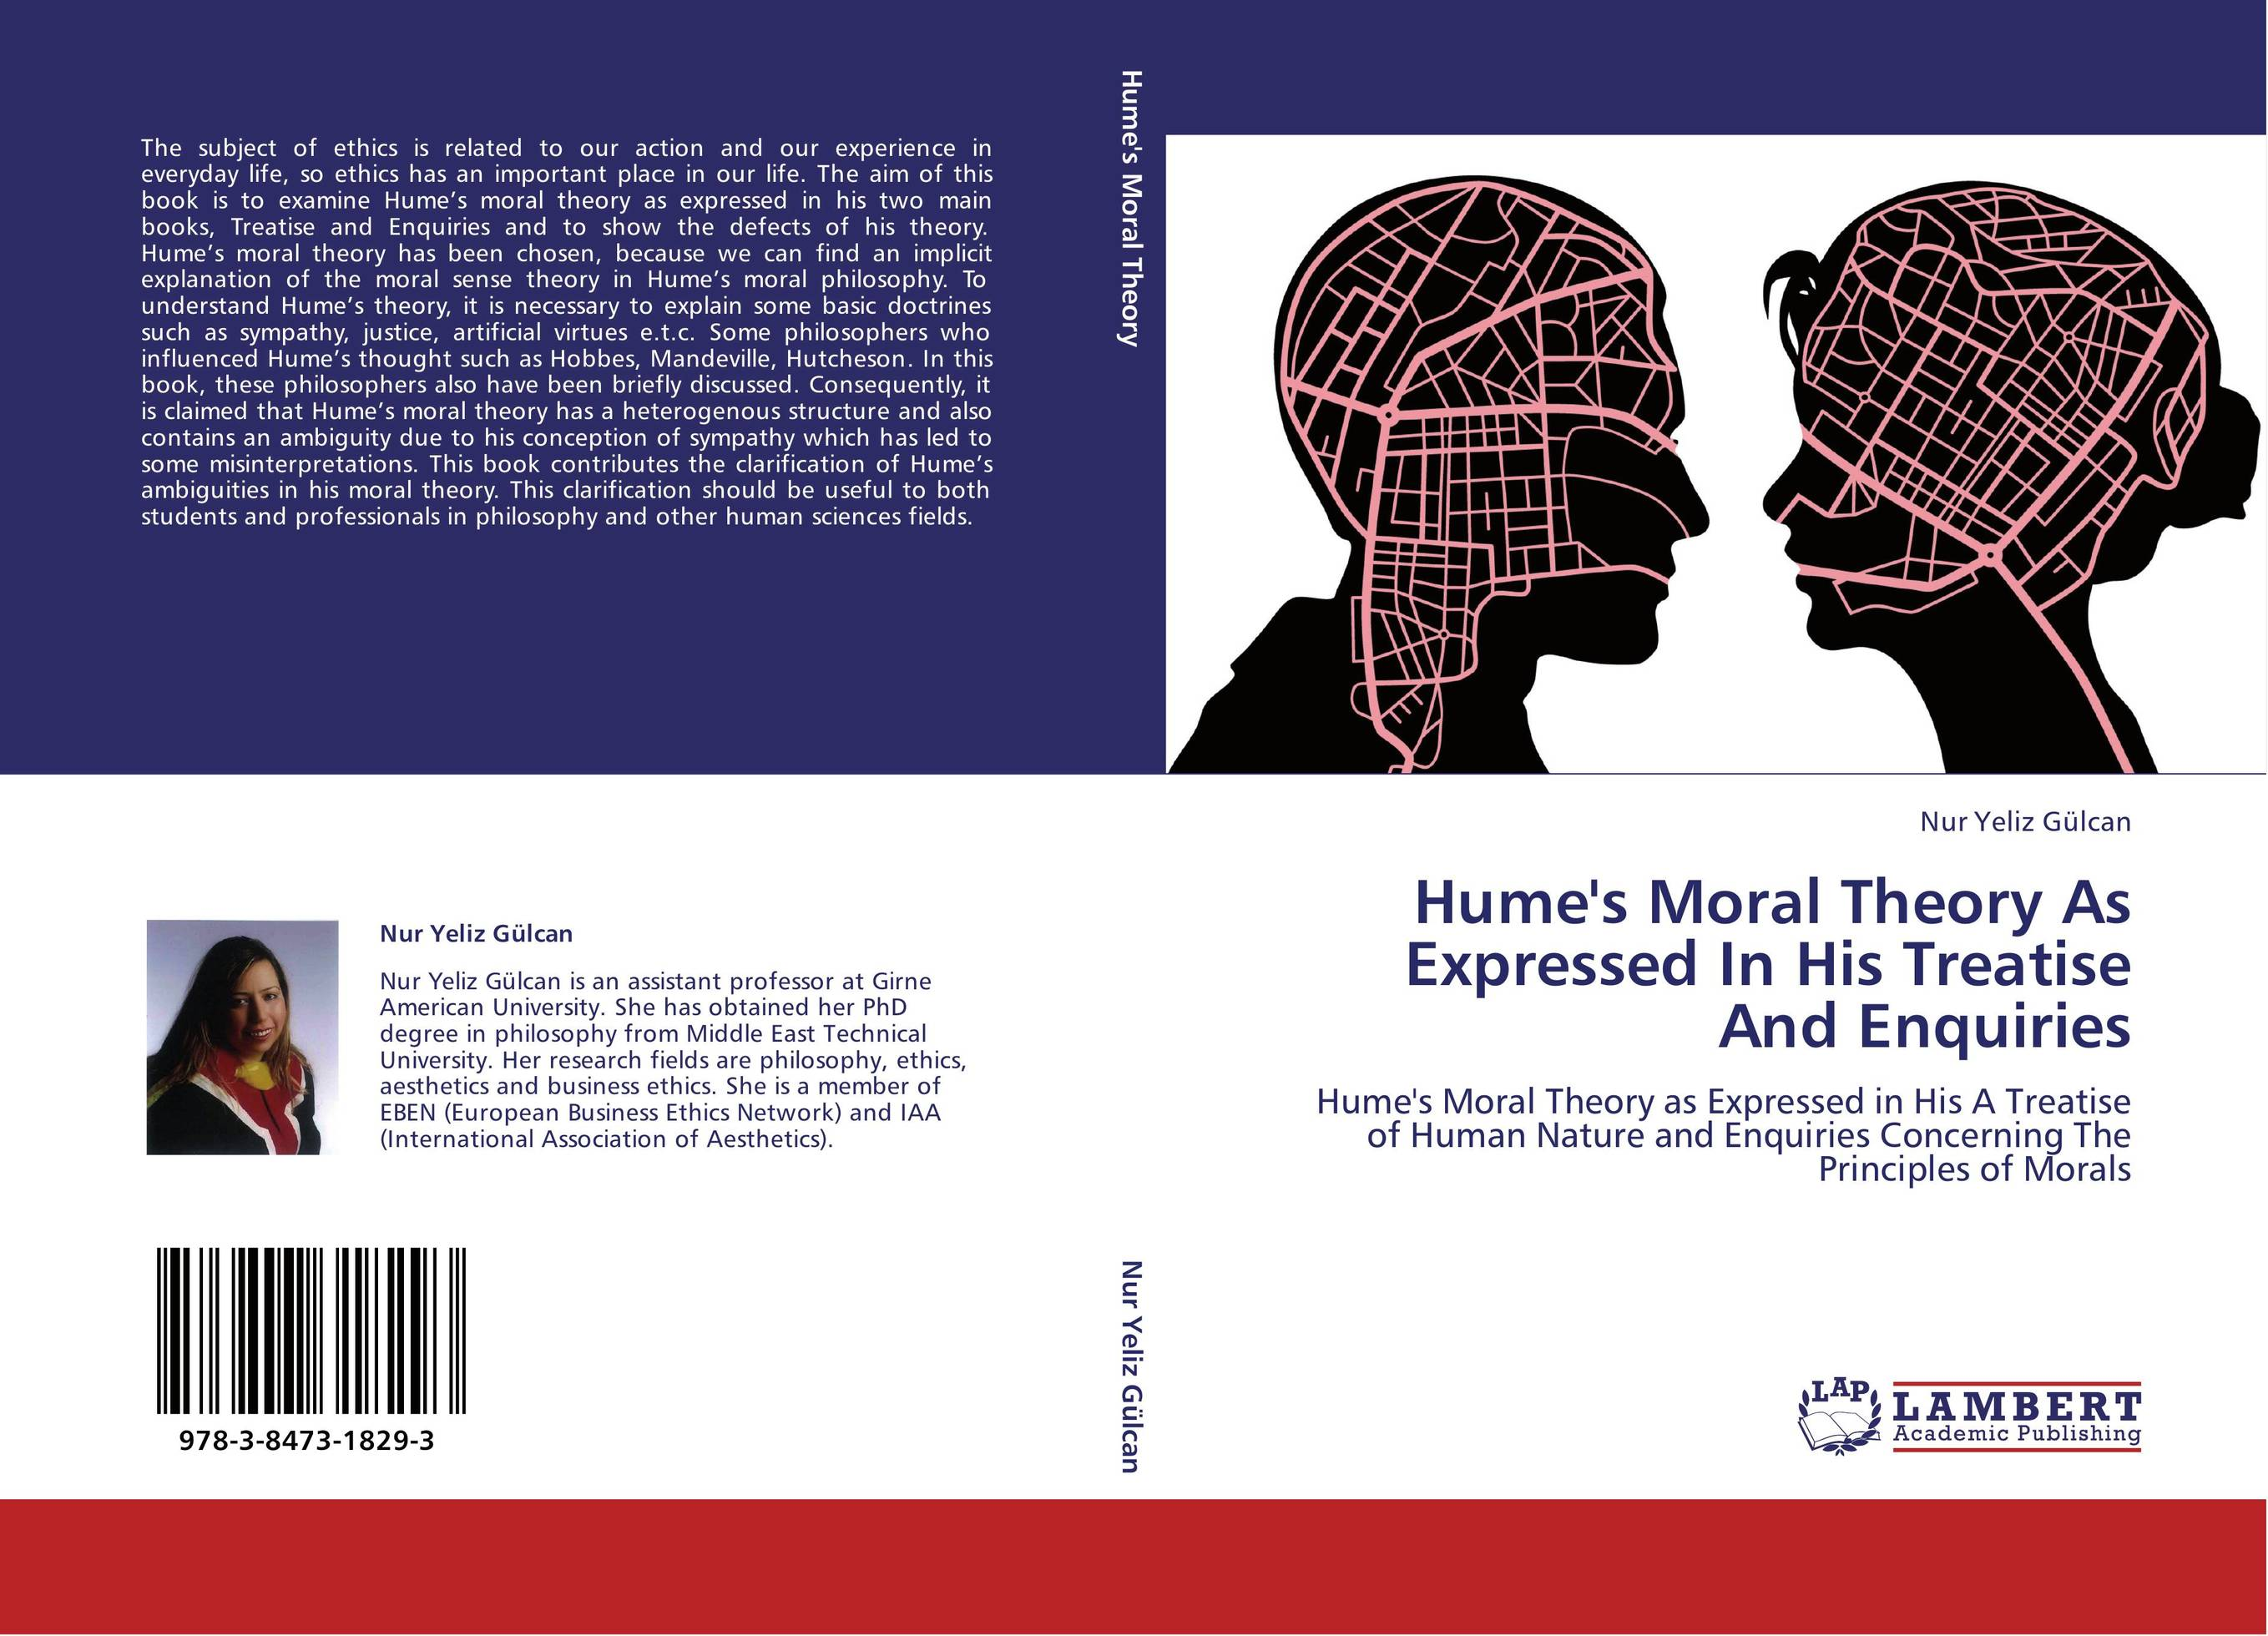 an introduction to humes moral theory David hume hume on is and ought  and for many people it represents the take-home message of hume's moral philosophy it is sometimes rather grandly referred to as hume's law but what exactly did he mean by it  for it was a commonplace of eighteenth century logical theory that in a logically valid argument the matter of the.